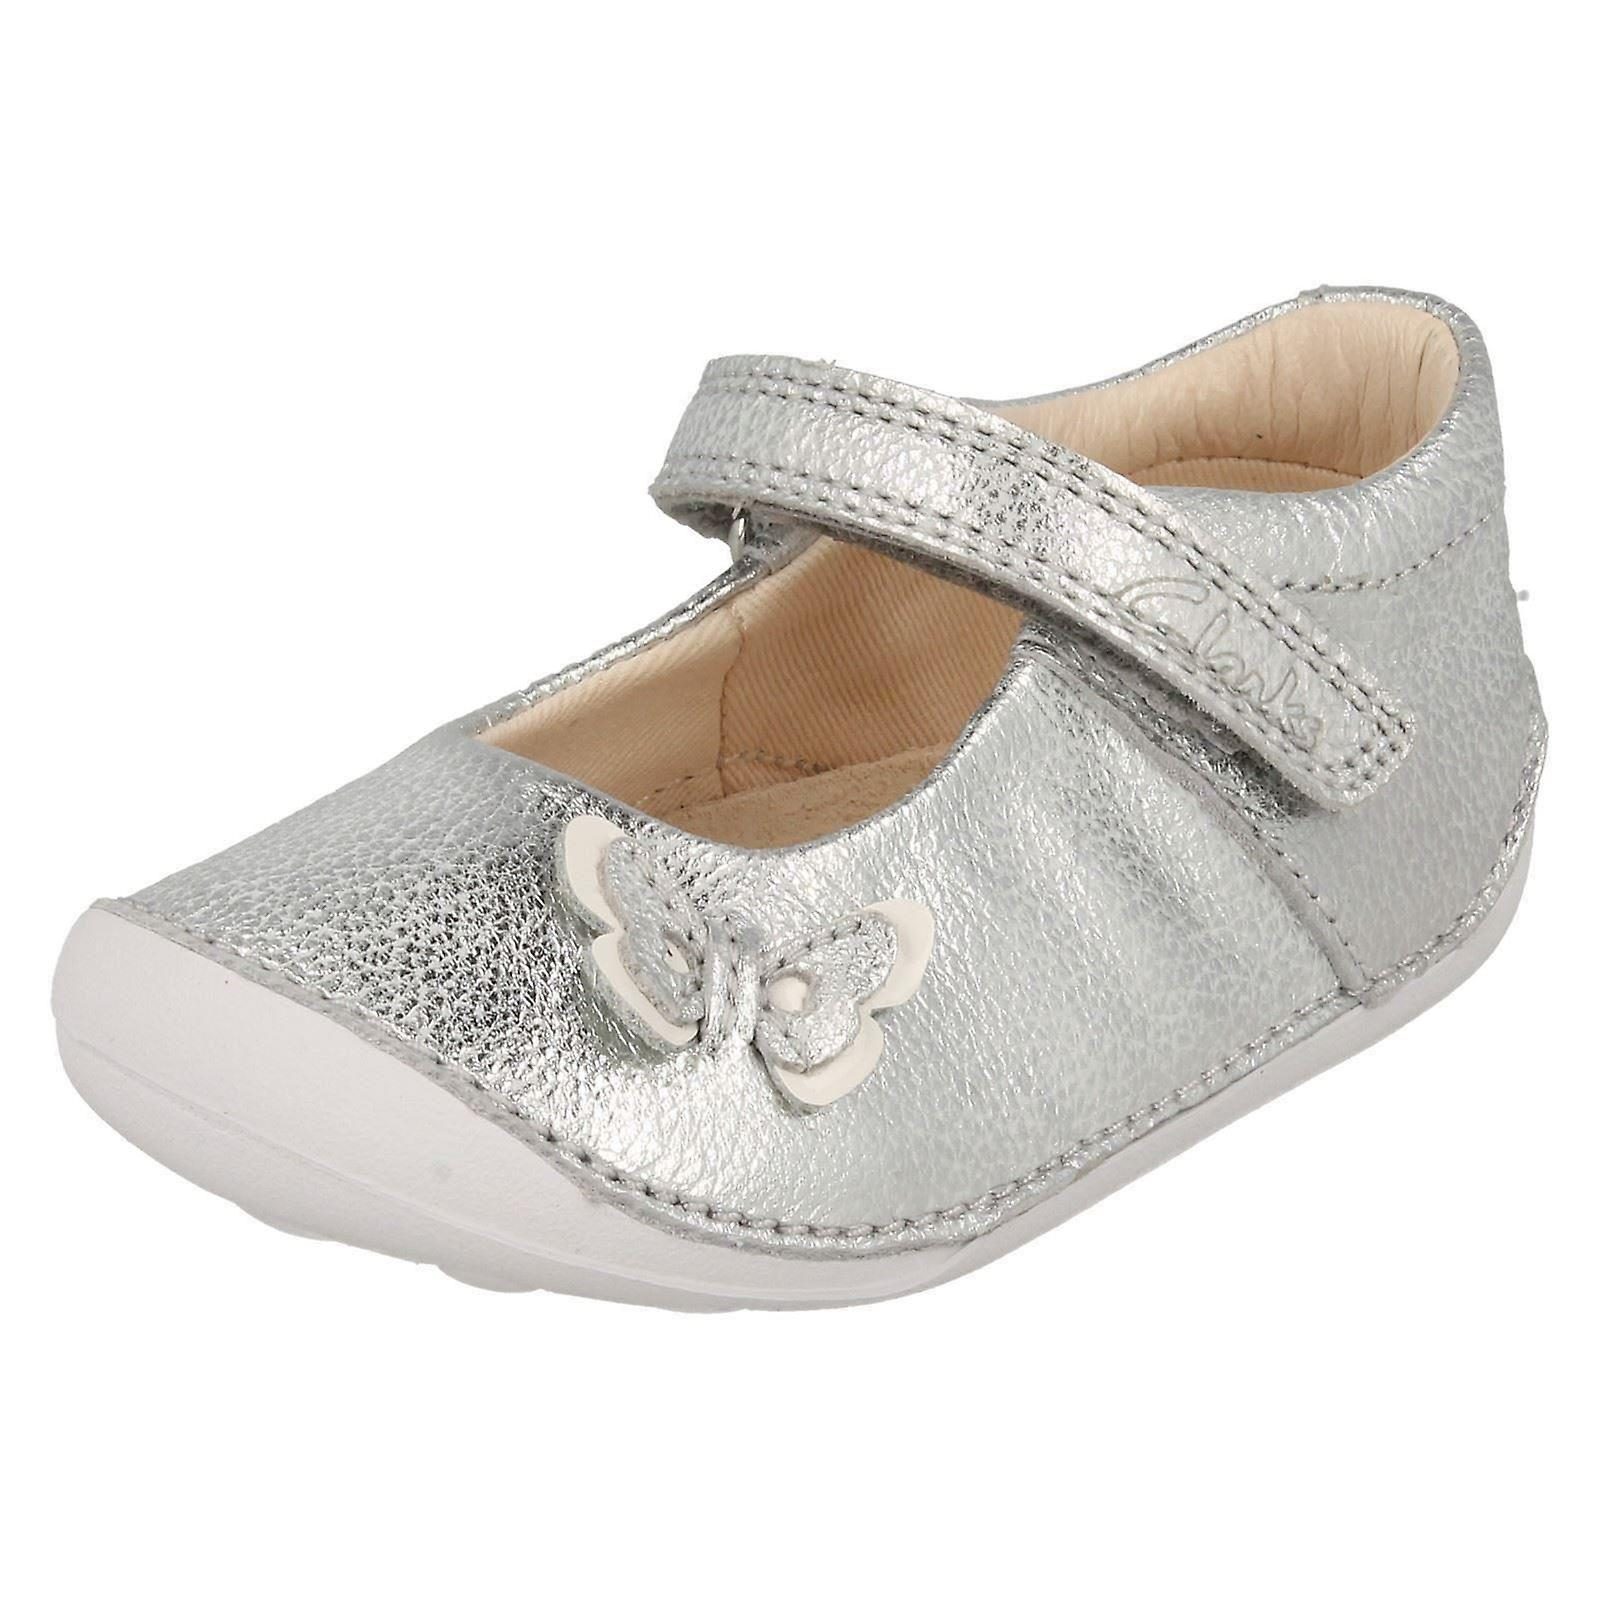 Girls Clarks Clarks Girls First Shoes Little Mia 6965c1